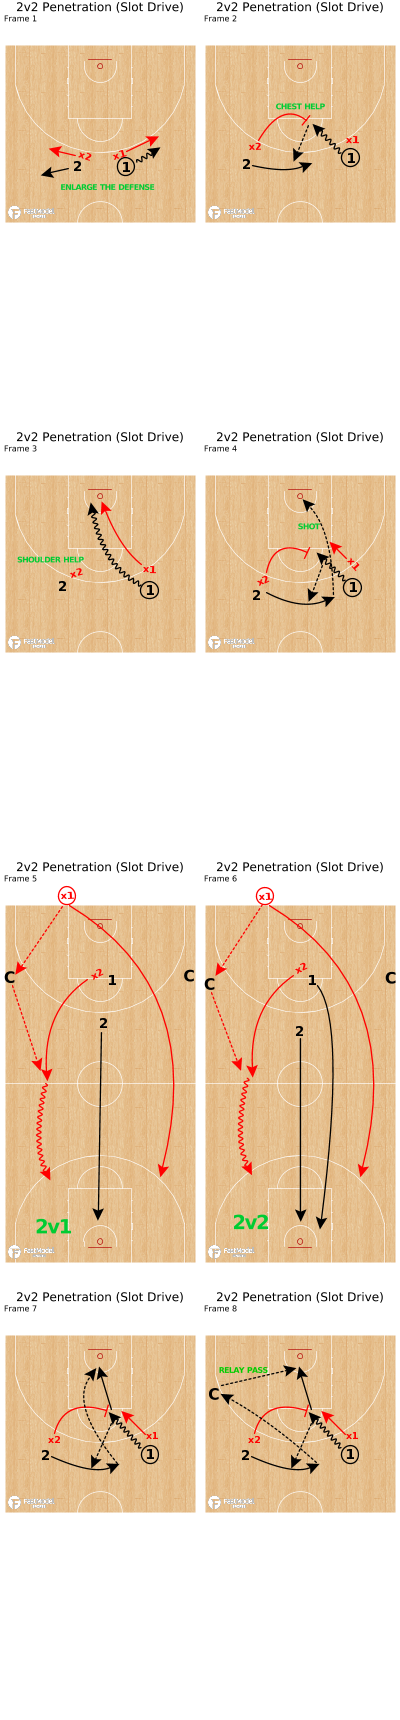 Basketball Play - 2v2 Penetration (Slot Drive)